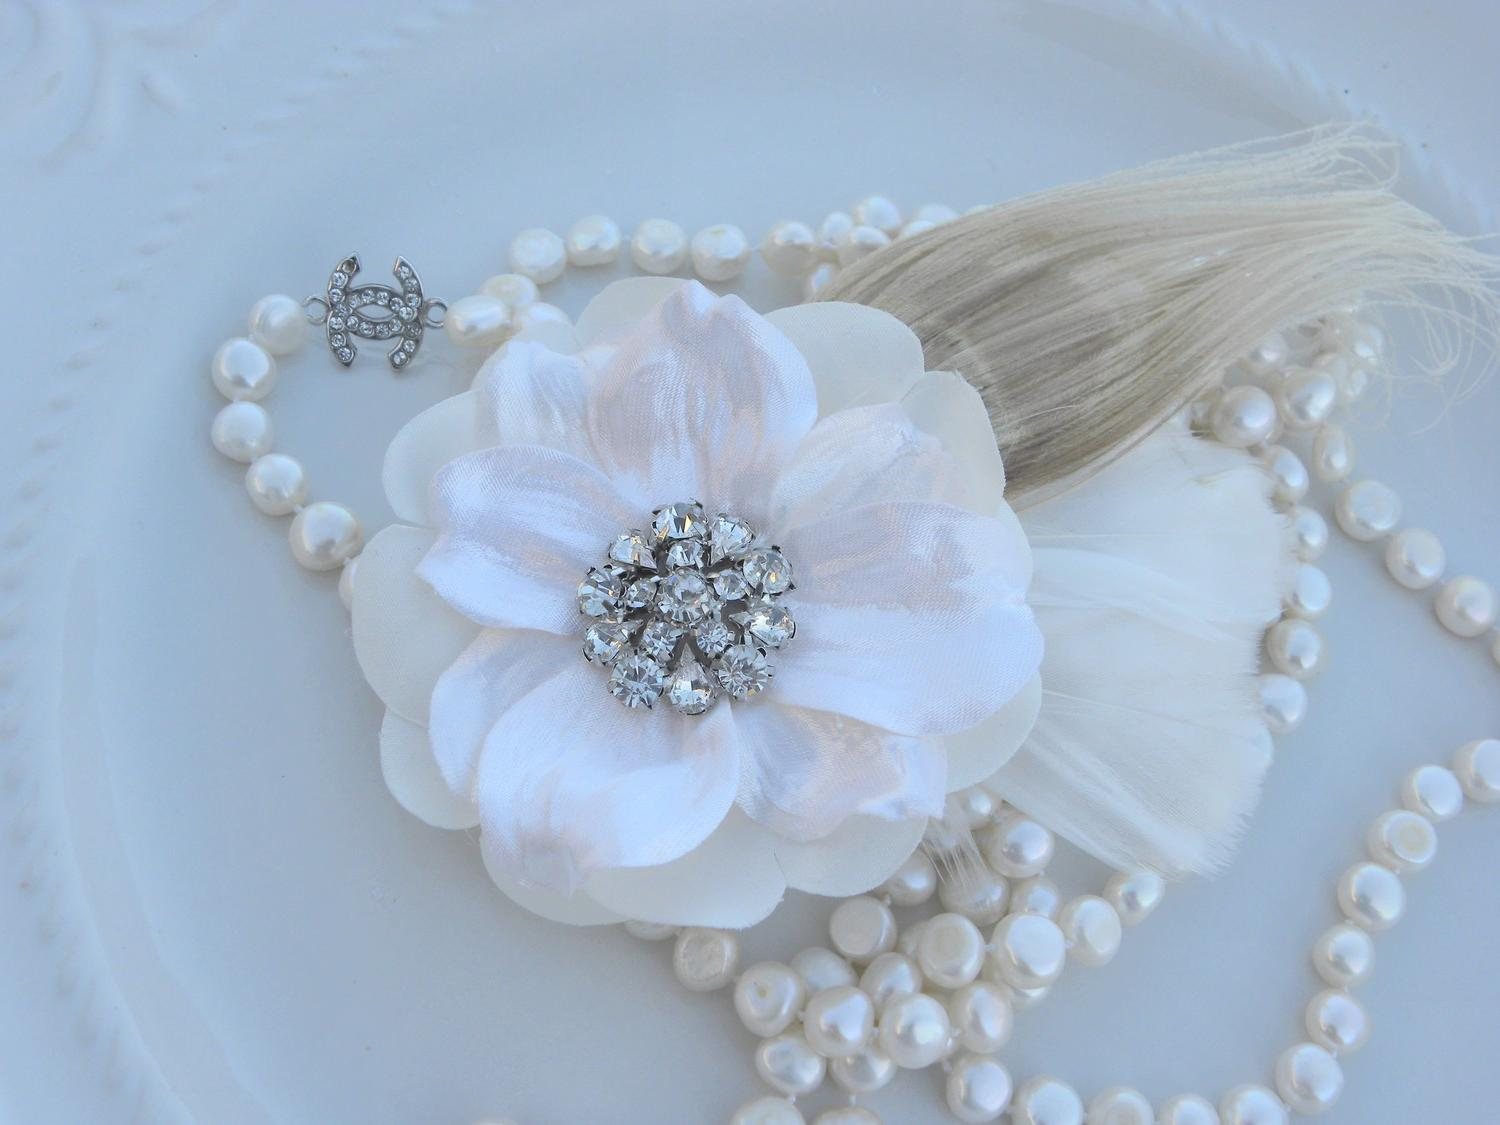 Vintage Inspired Bridal Flower Hair Piece with Ivory Peacock Feather.